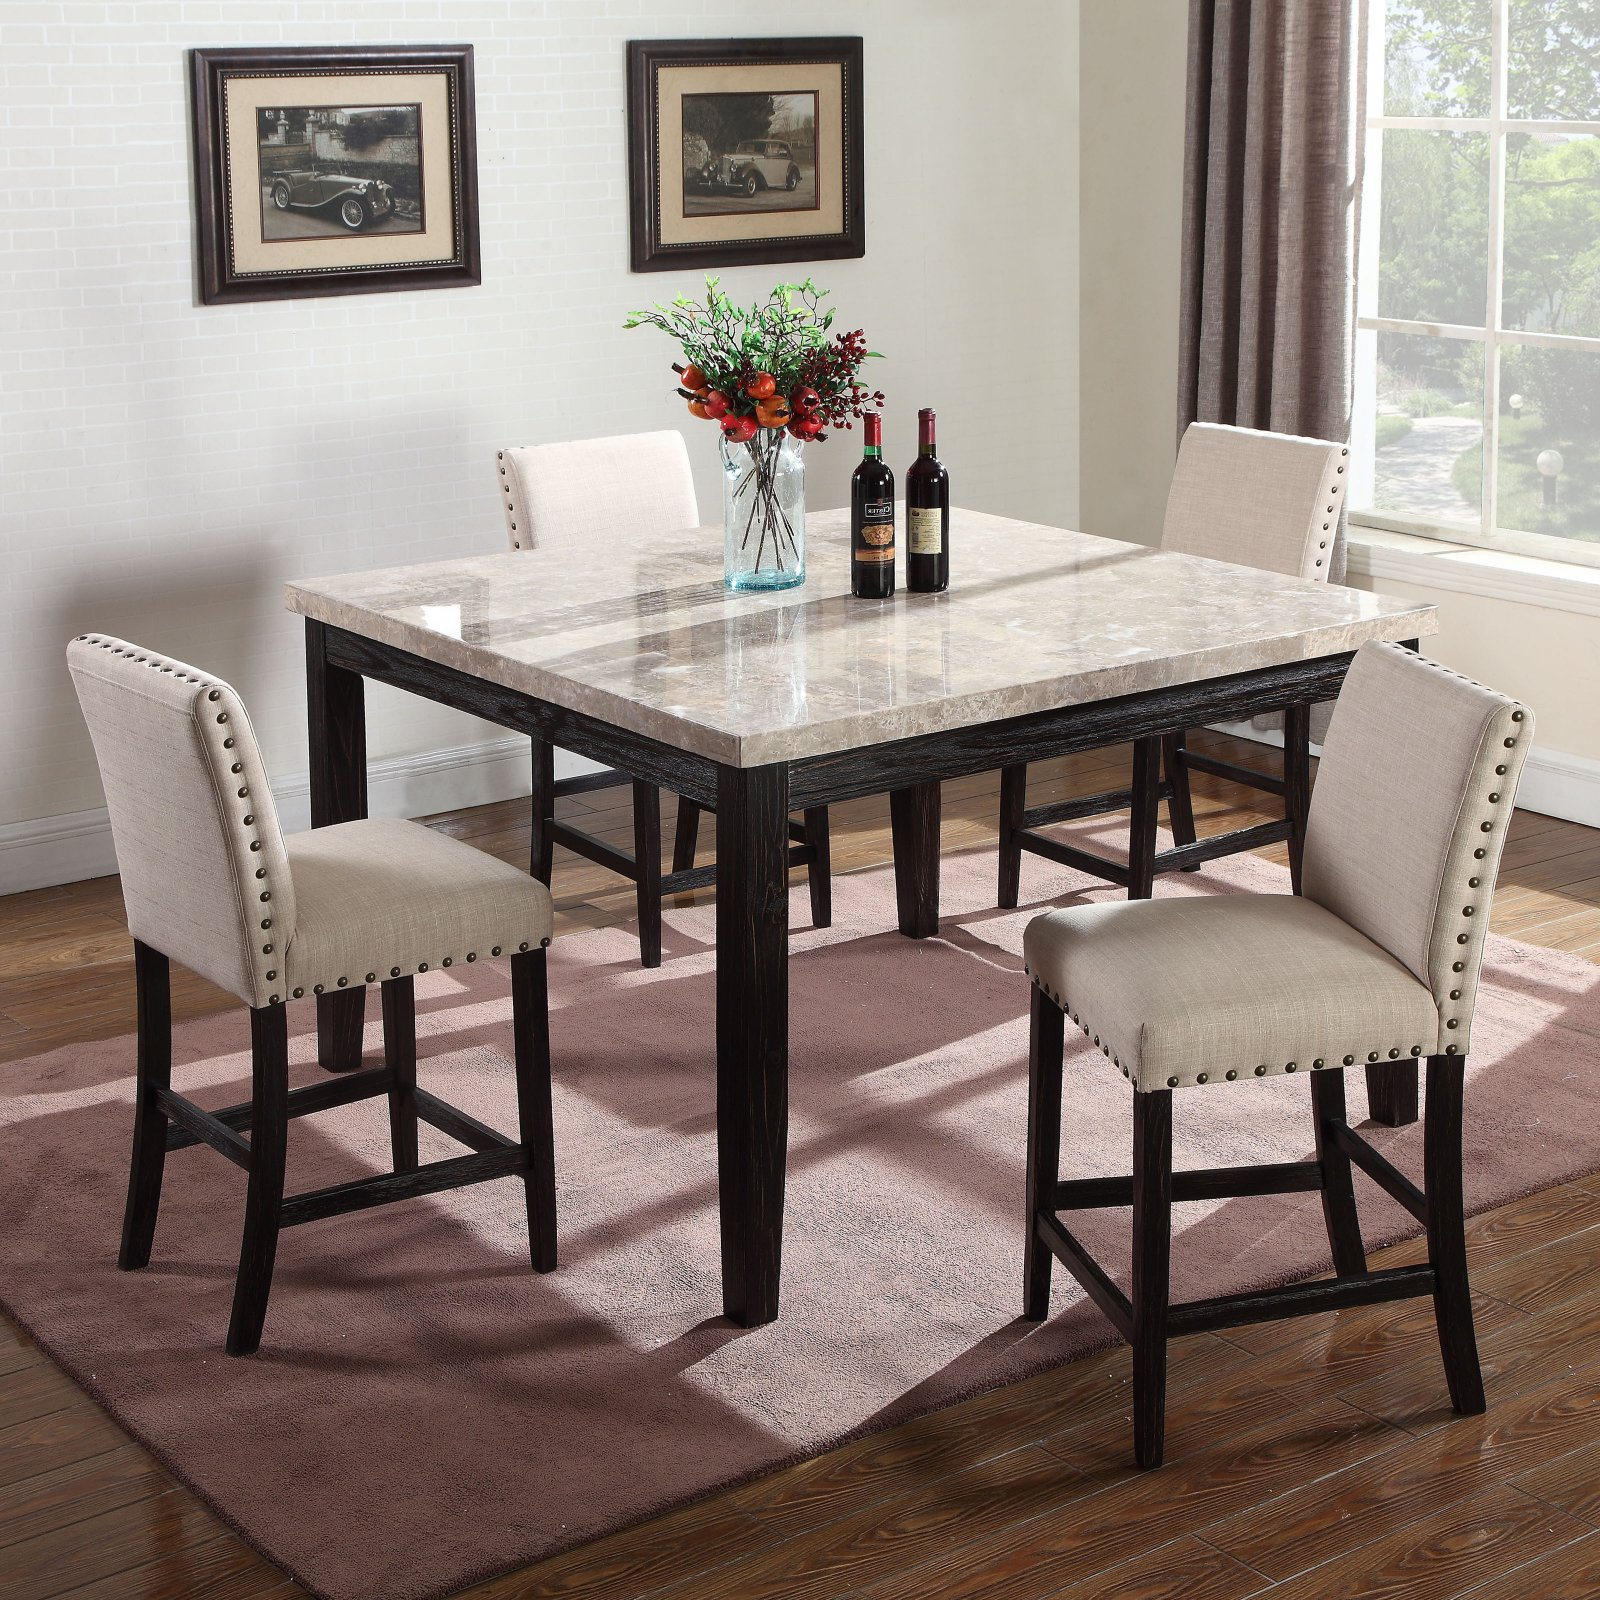 Most Current Transitional Antique Walnut Square Casual Dining Tables Regarding Best Master Furniture Celeste Square 5 Piece Faux Marble (View 7 of 25)